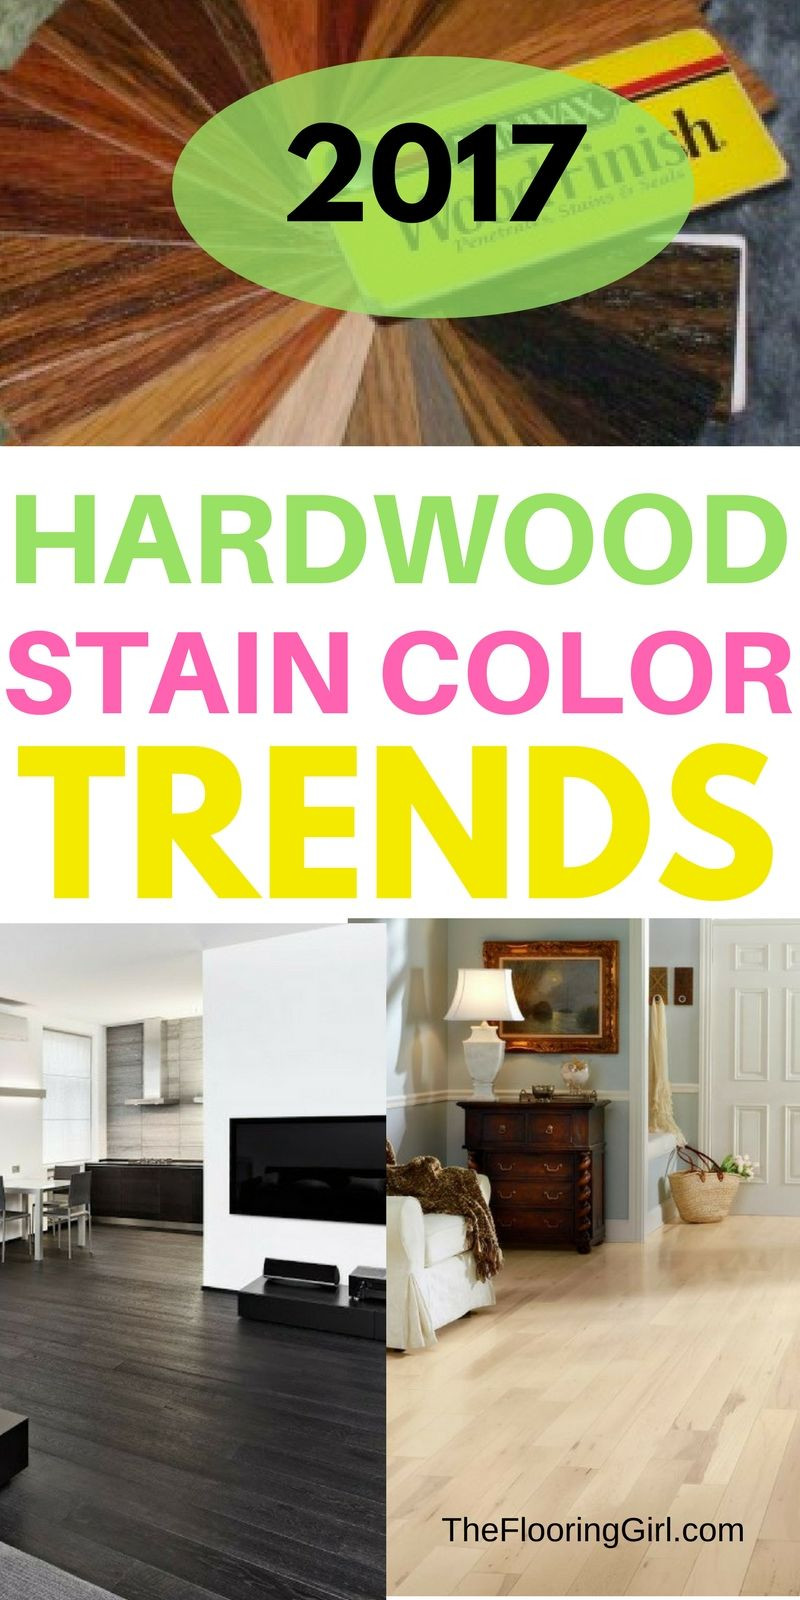 hardwood floor alternatives of hardwood flooring stain color trends 2018 more from the flooring in hardwood flooring stain color trends for 2017 hardwood colors that are in style theflooringgirl com